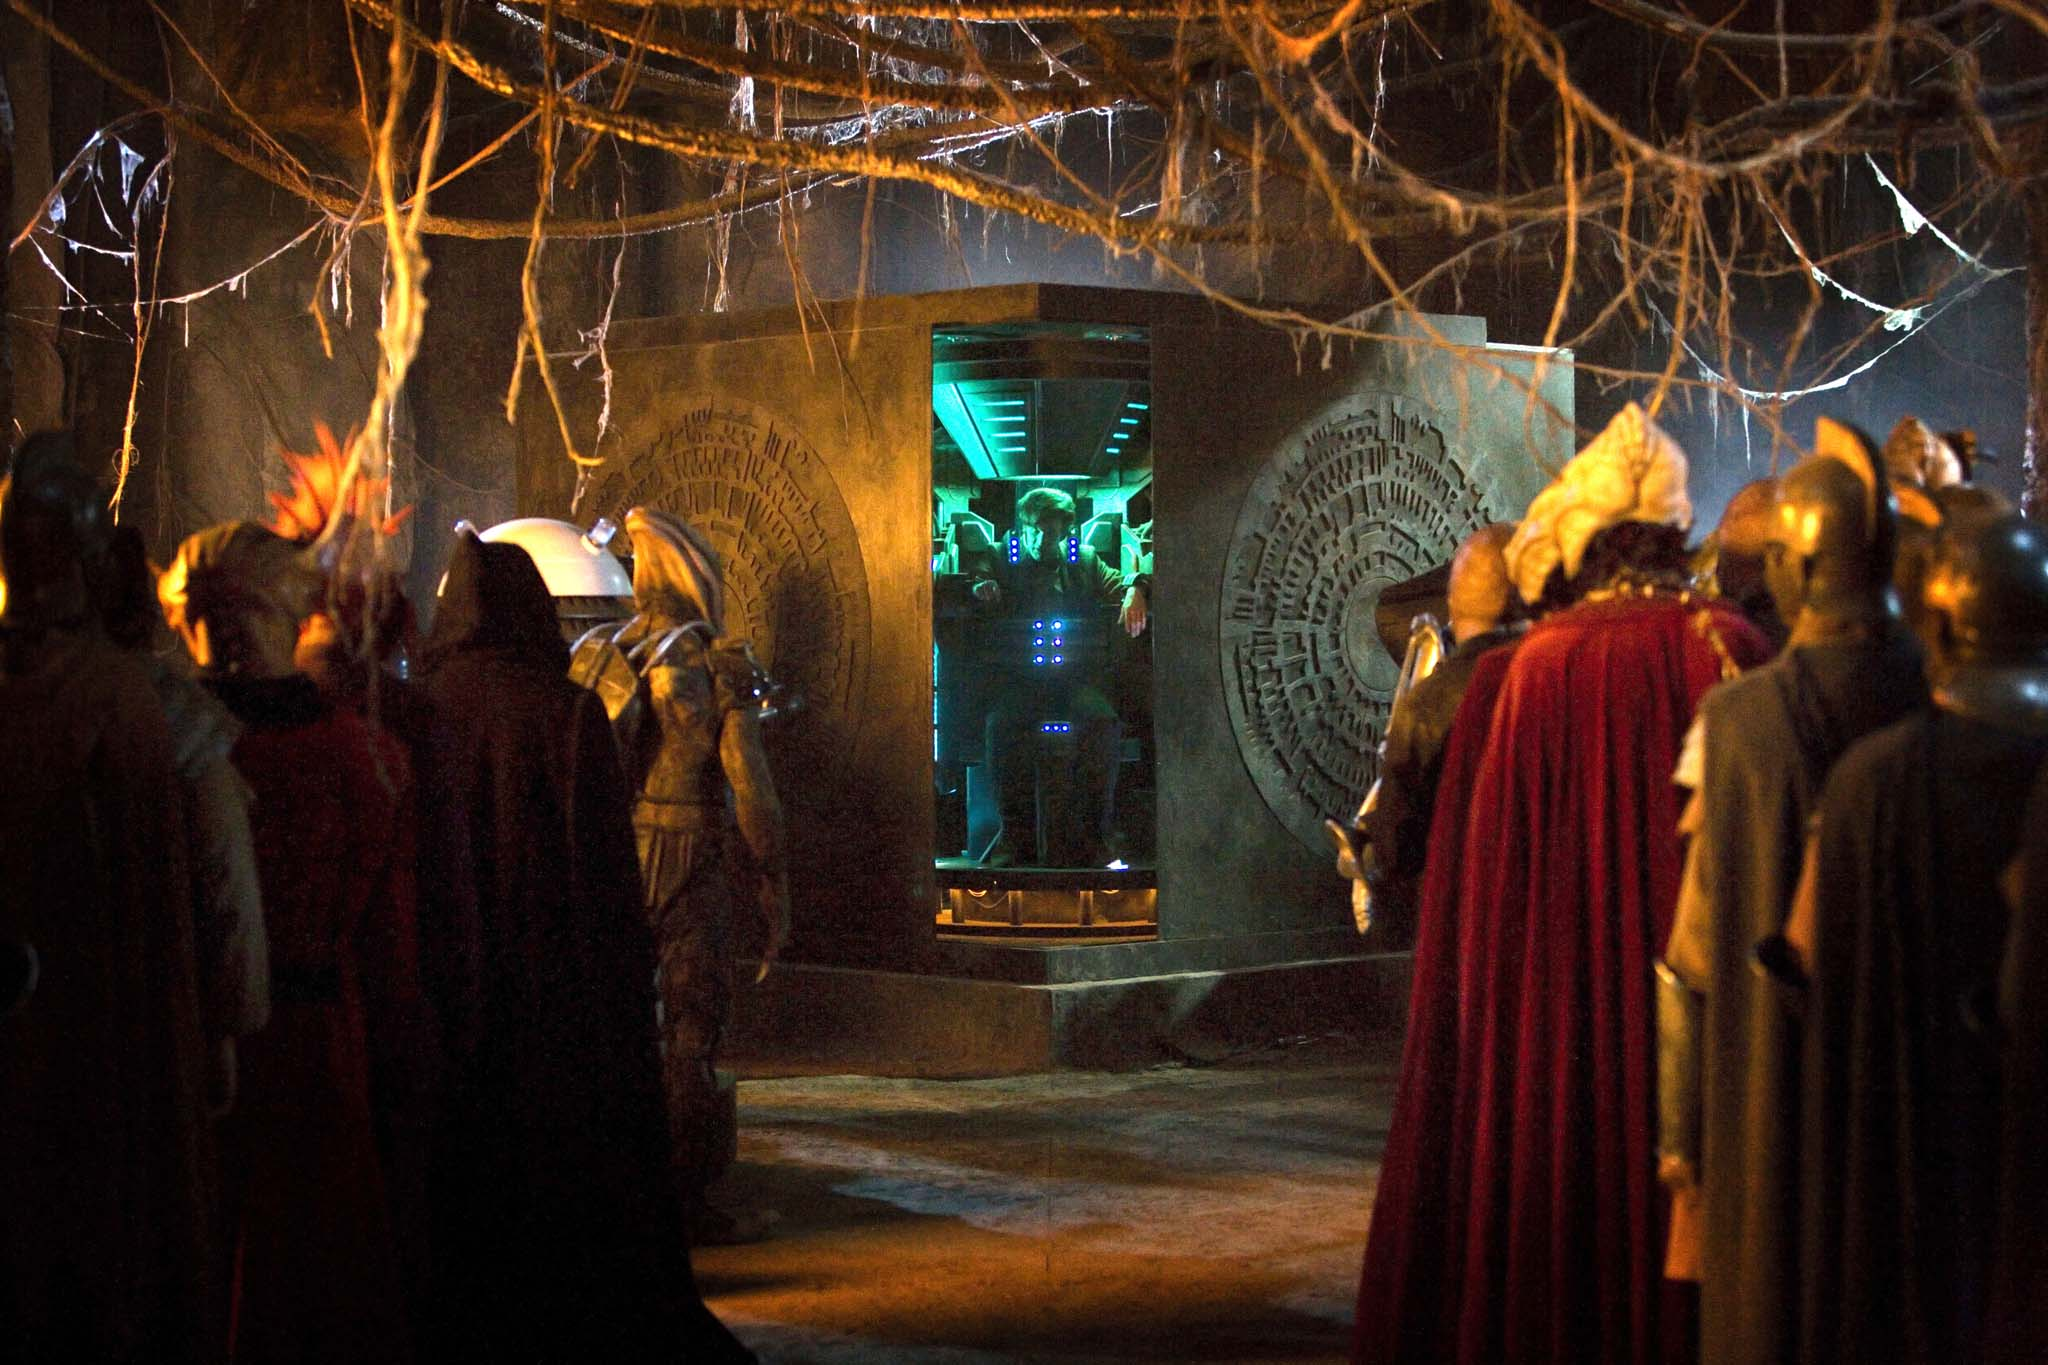 Fall Painting Wallpapers Doctor Who Tv Series 5 Story 212 The Pandorica Opens The